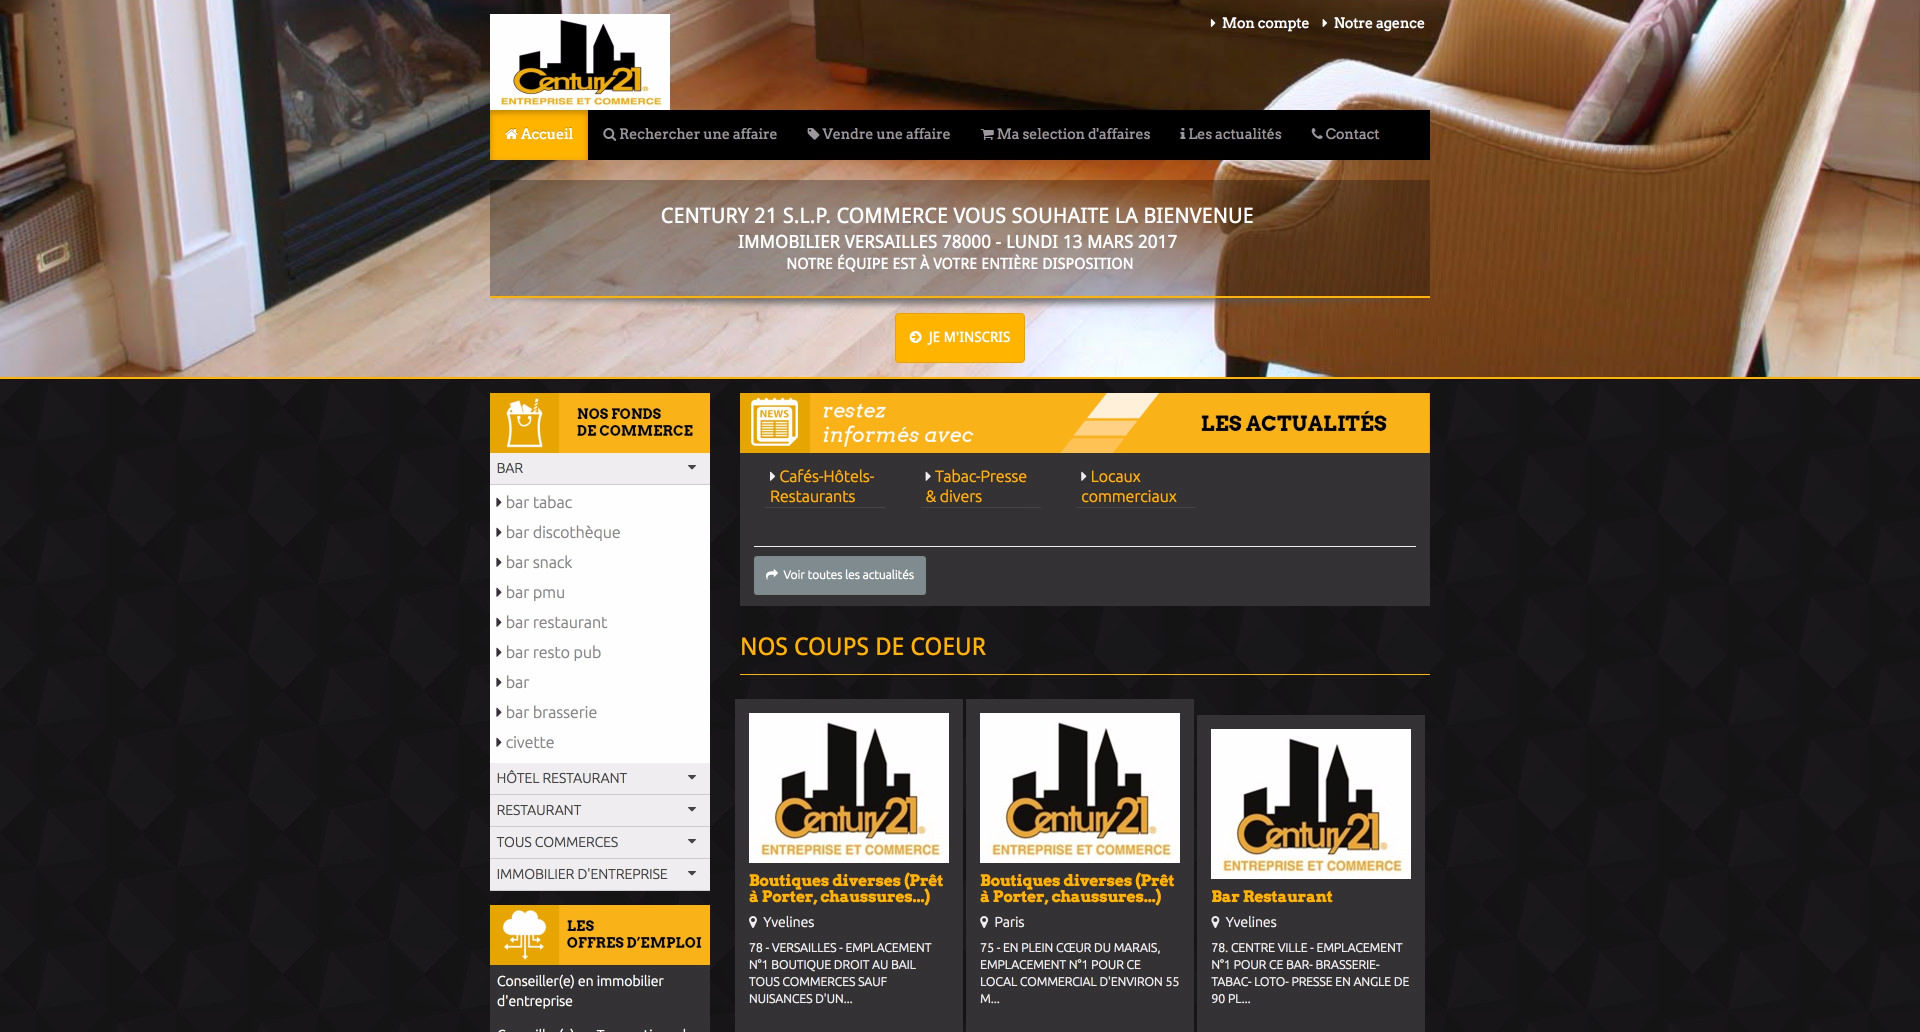 site internet SLP Century - Cabinet d'affaires transaction en fonds de commerce et Immobilier d'entreprise